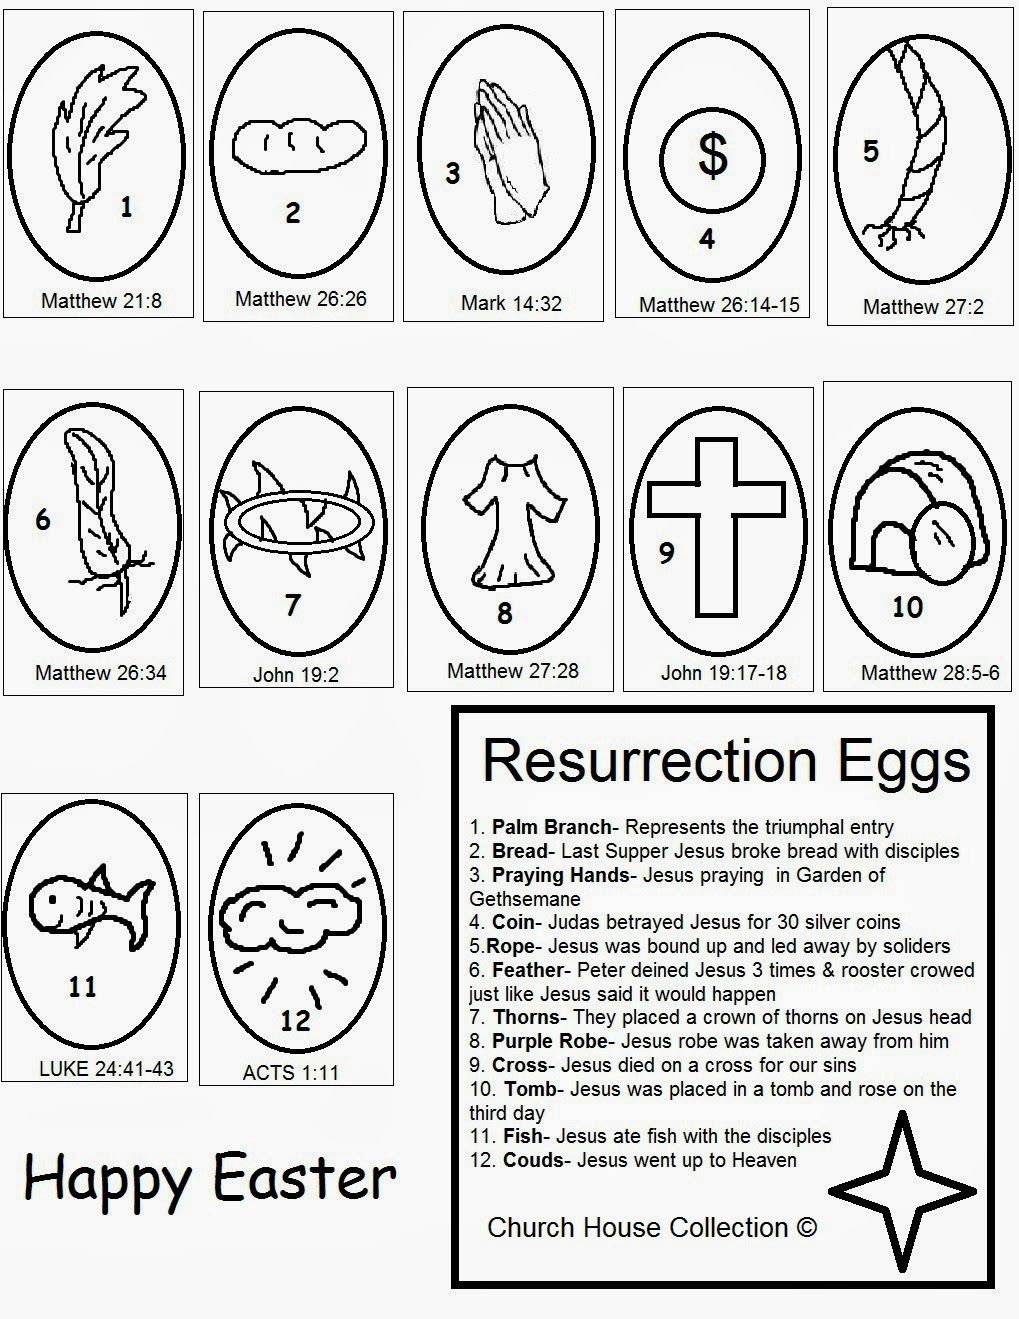 Church House Collection Blog: Easter Resurrection Eggs Craft- Free Printables